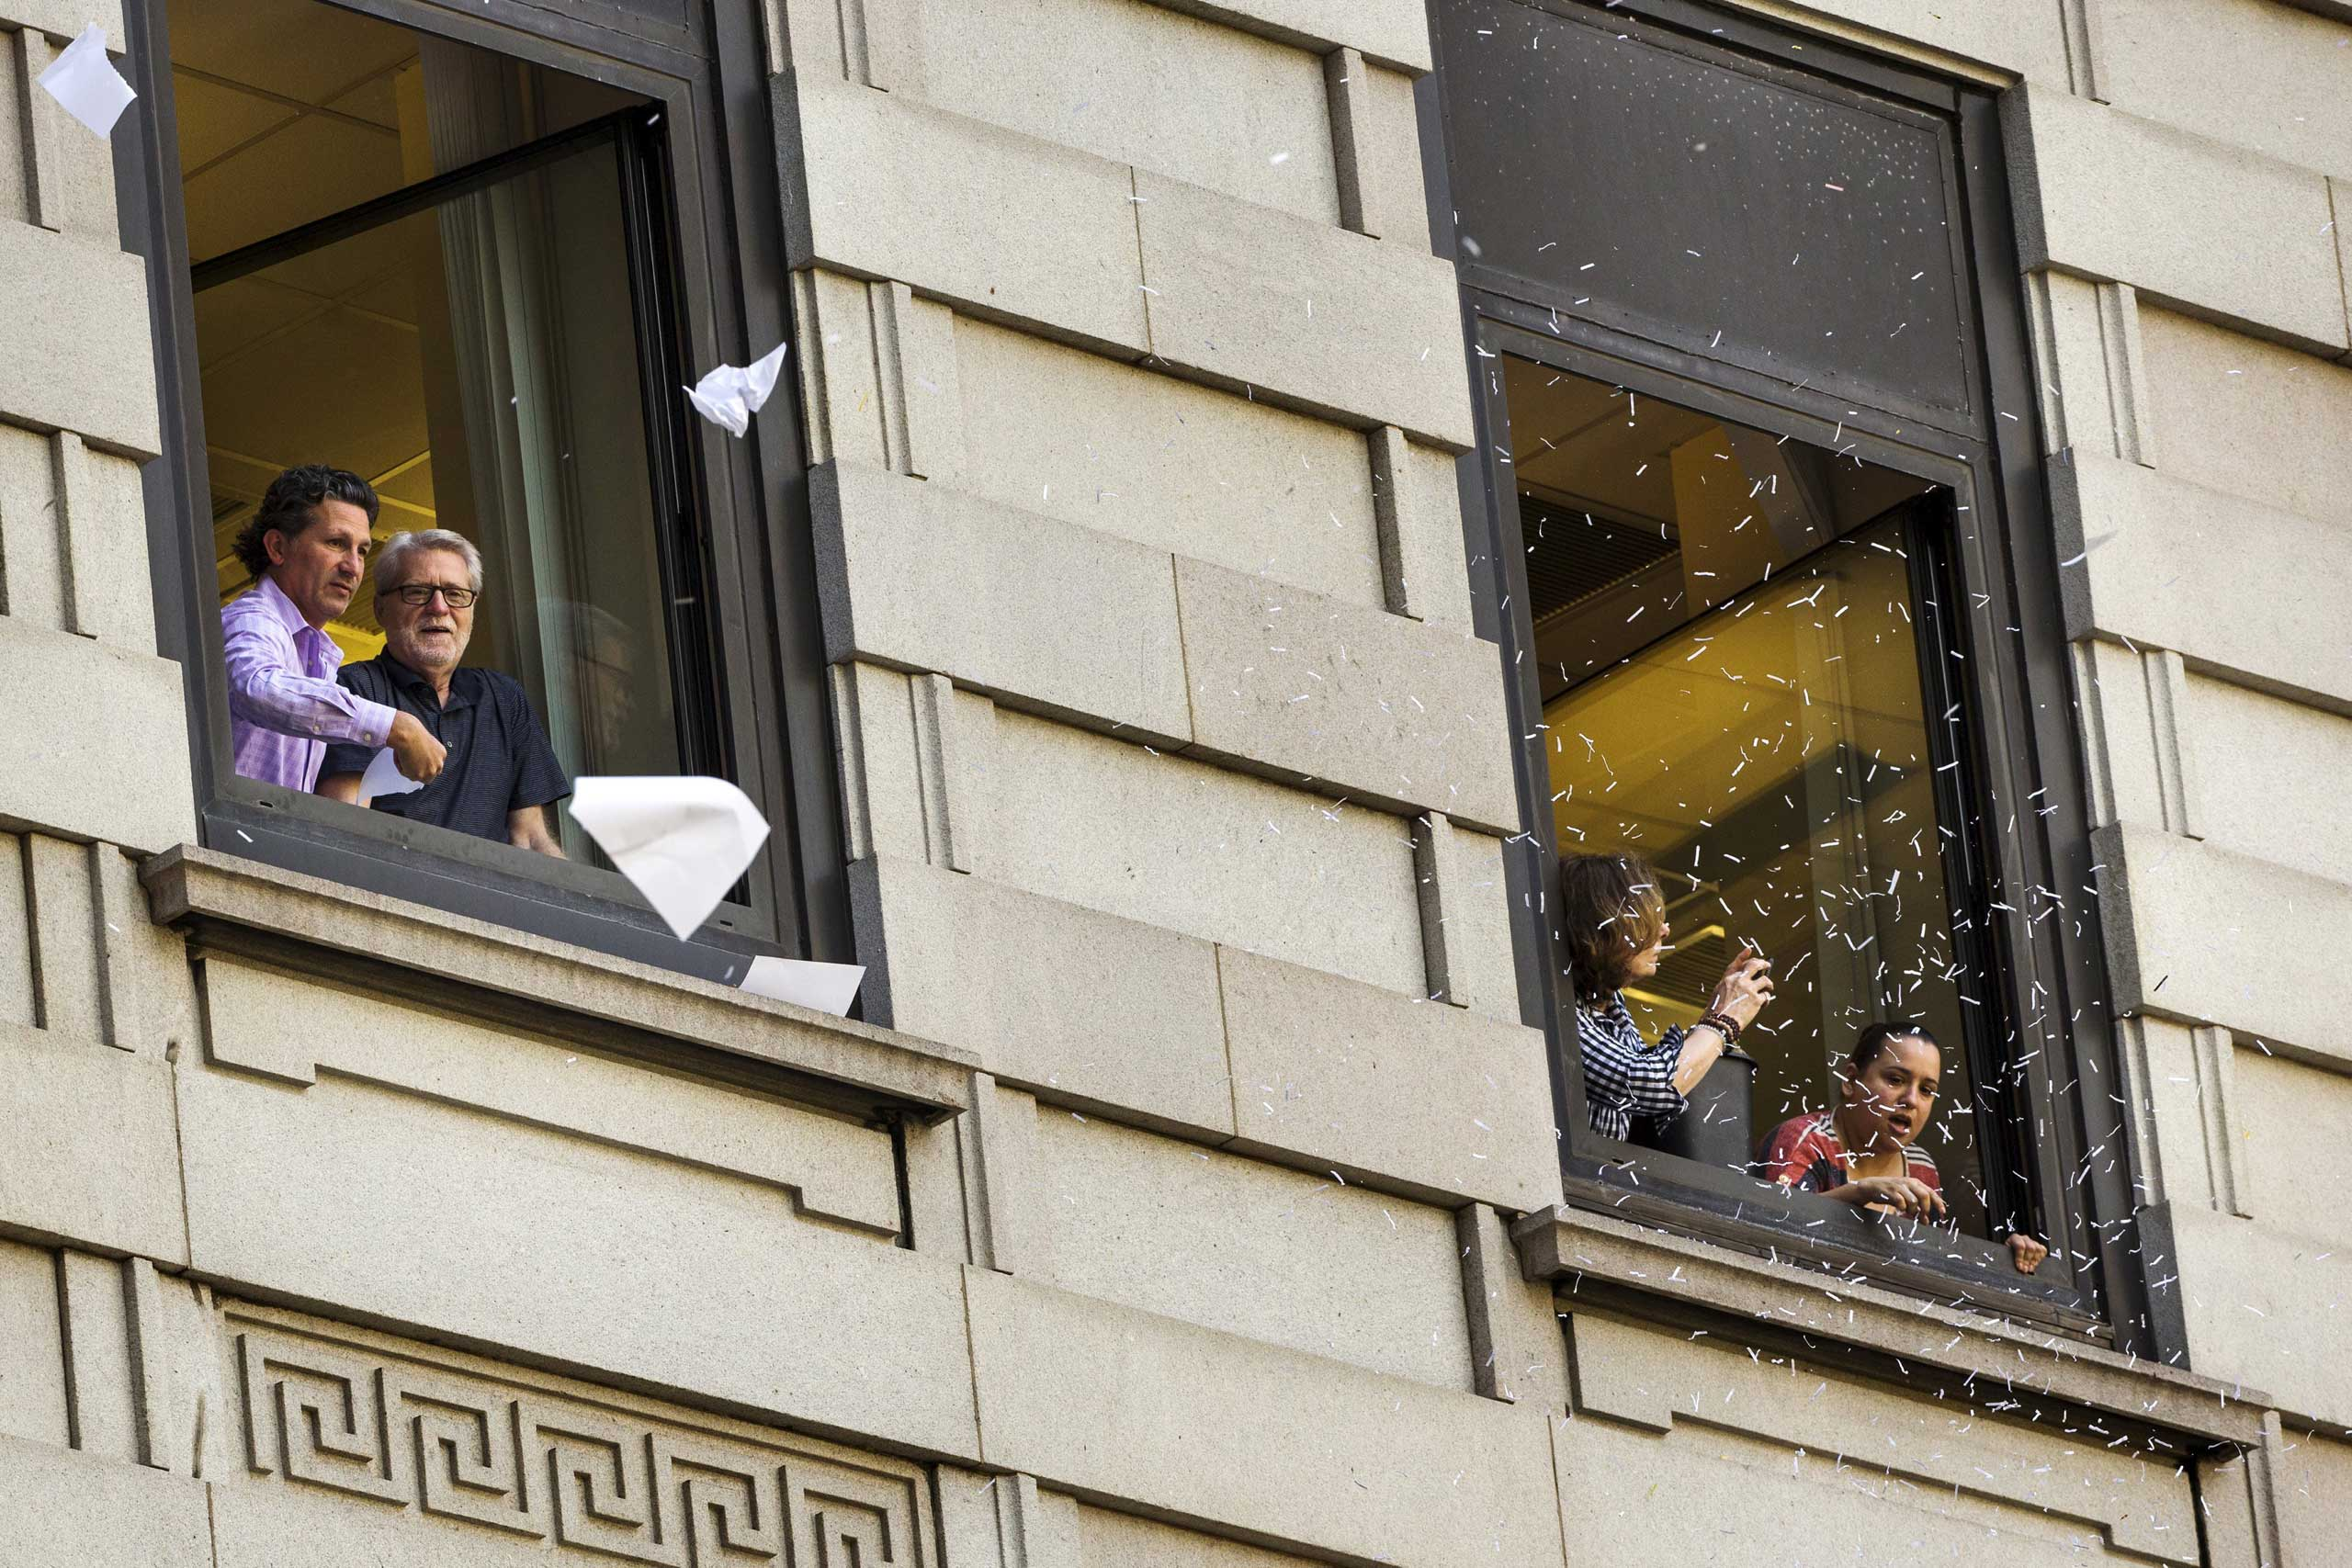 Fans of the U.S. women's soccer team throw confetti out of office windows as members of the team take part in a ticker tape parade in New York City on July 10, 2015.